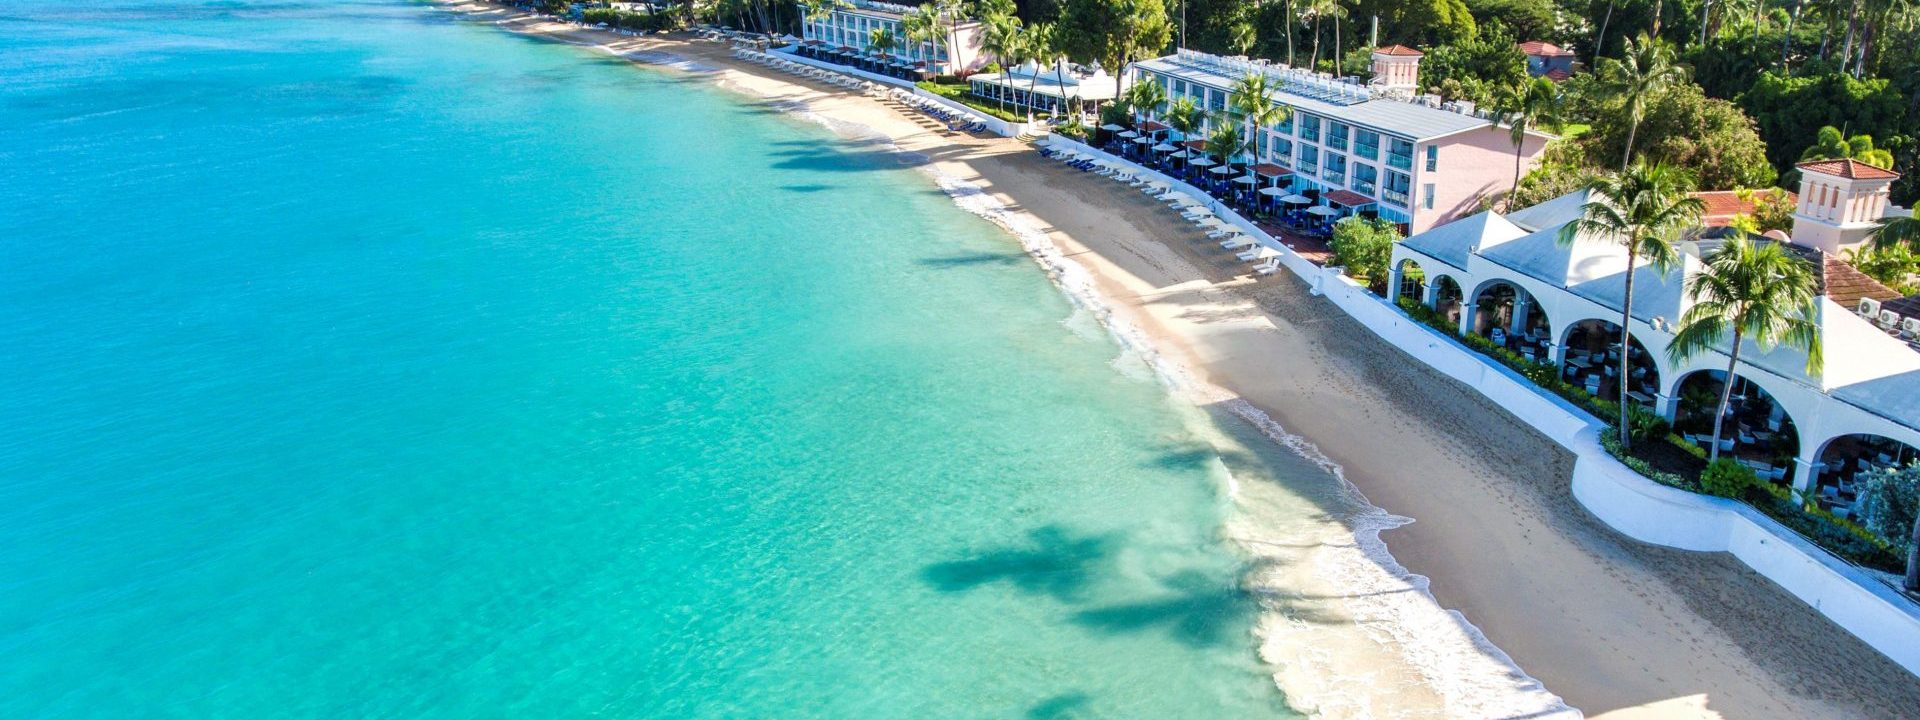 Barbados' Fairmont Royal Pavilion offers an idyllic beachfront setting